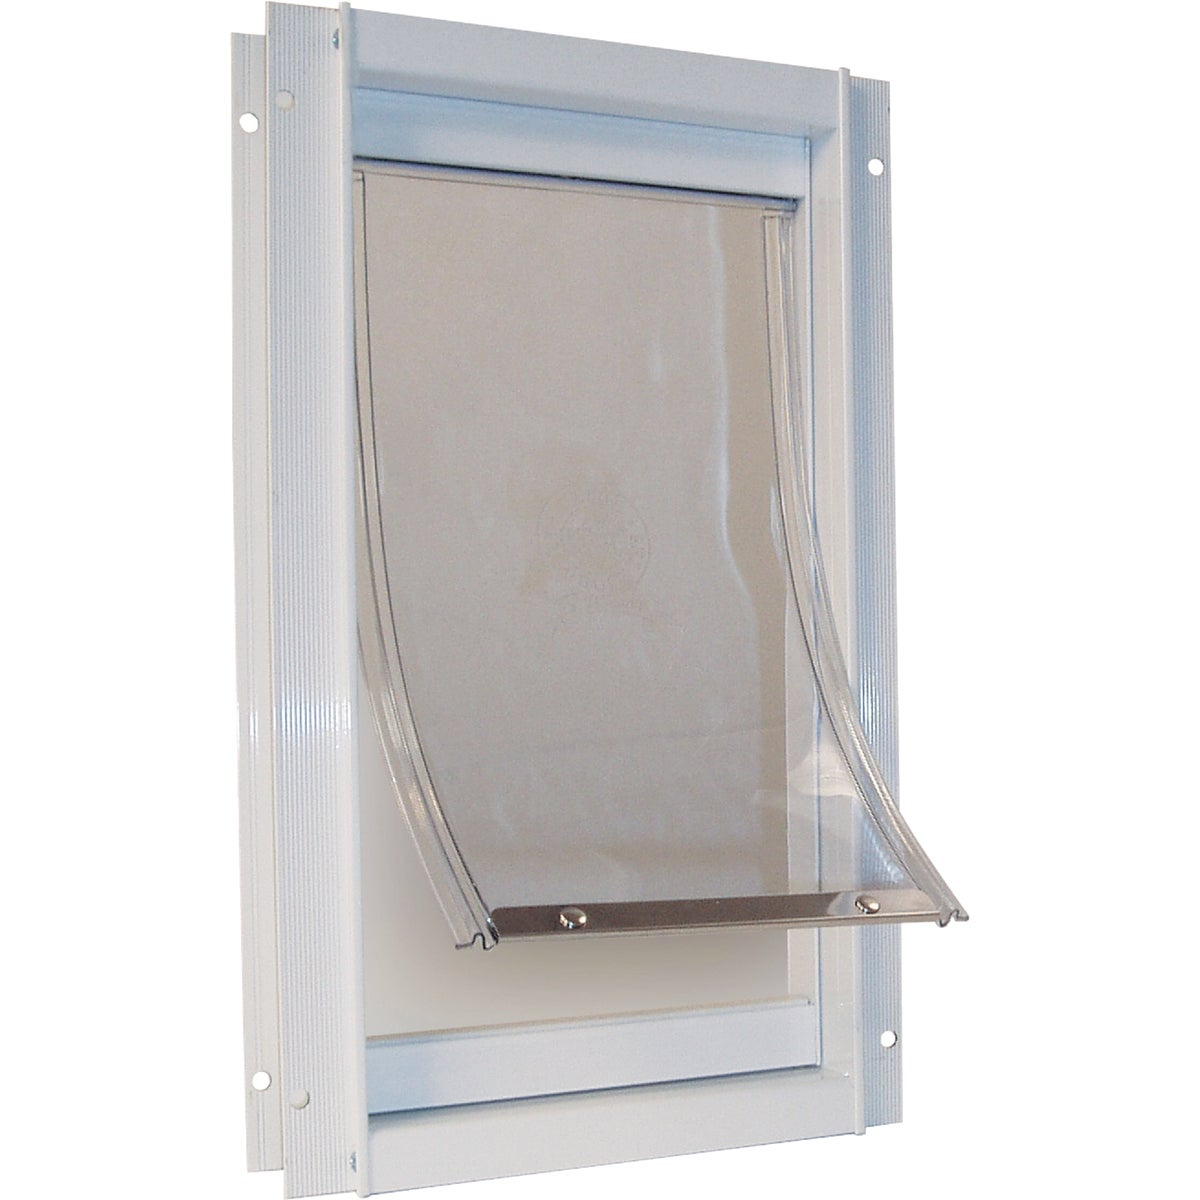 SUPER LRG ALUM PET DOOR